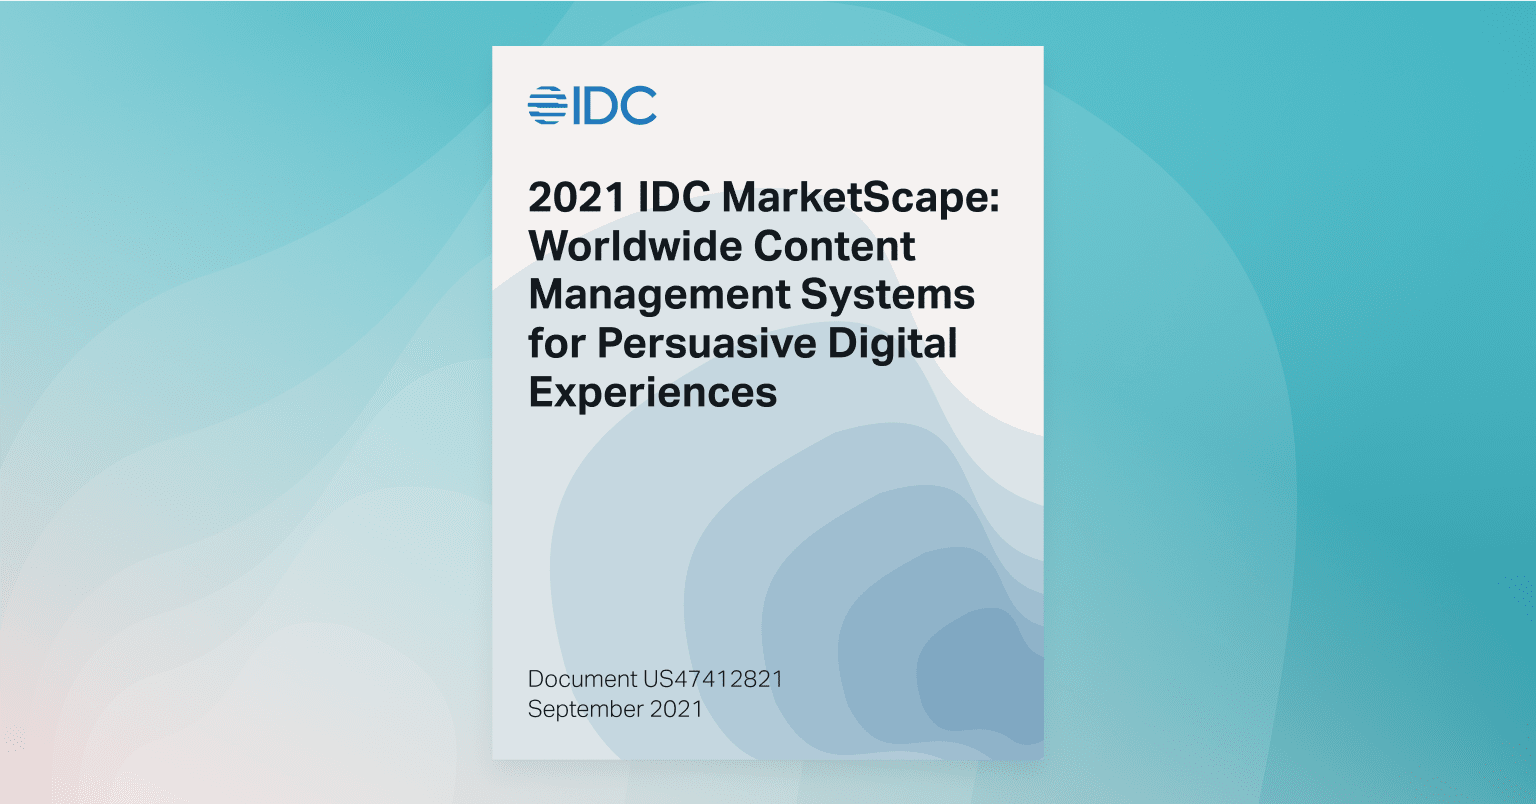 Automattic named a Leader in 2021 IDC MarketScape: Worldwide Content Management Systems for Persuasive Digital Experiences